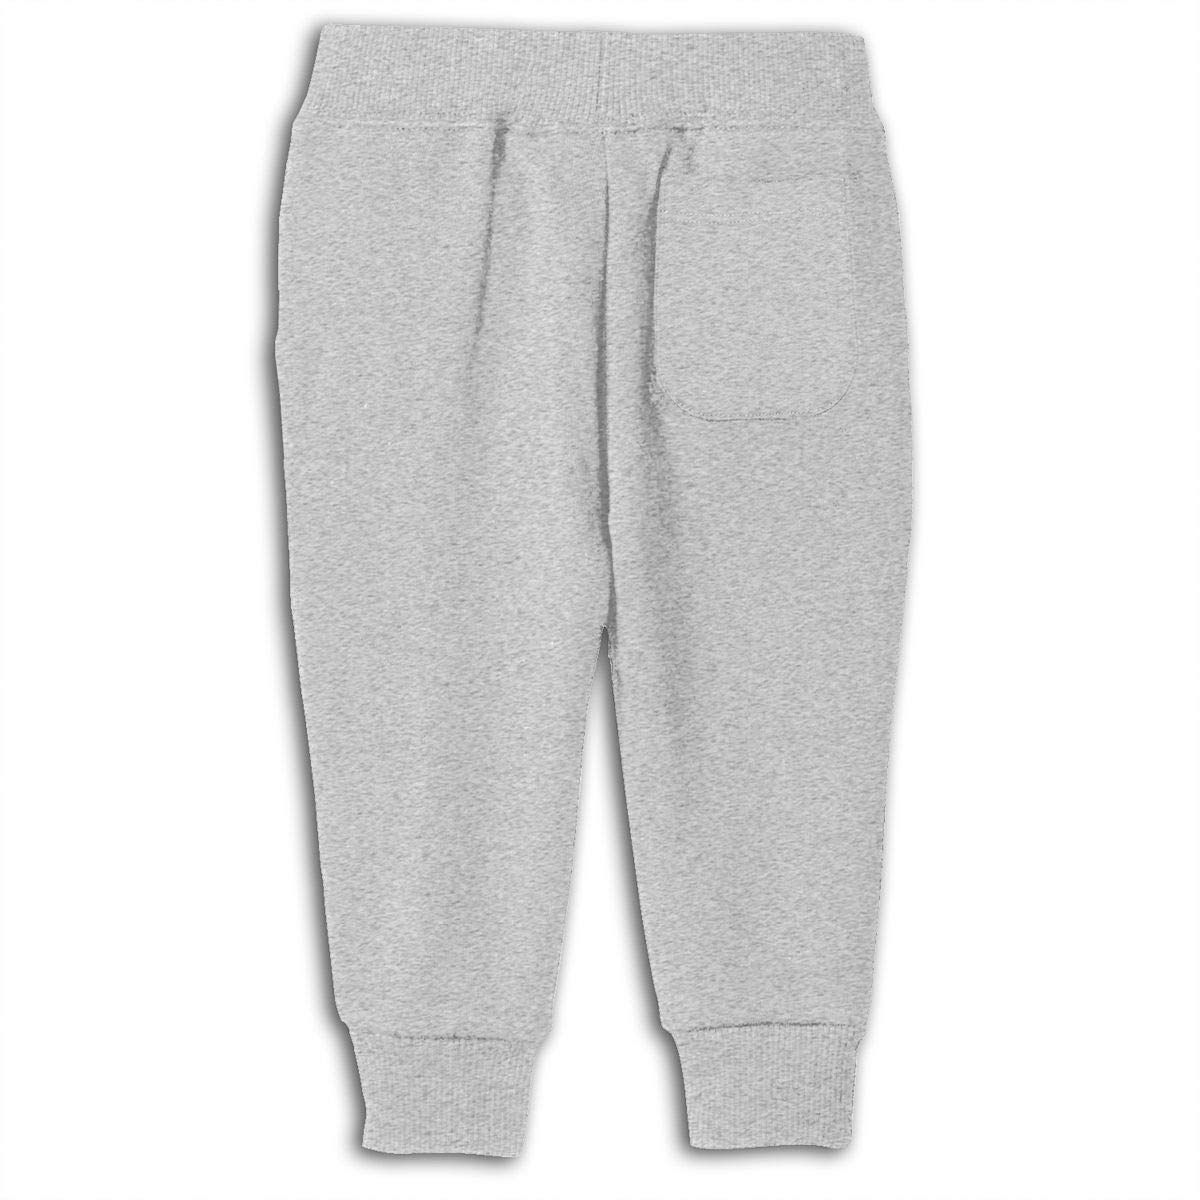 NJKM5MJ Bonsai Tree Zen Sweatpants Toddler Athletic Pants